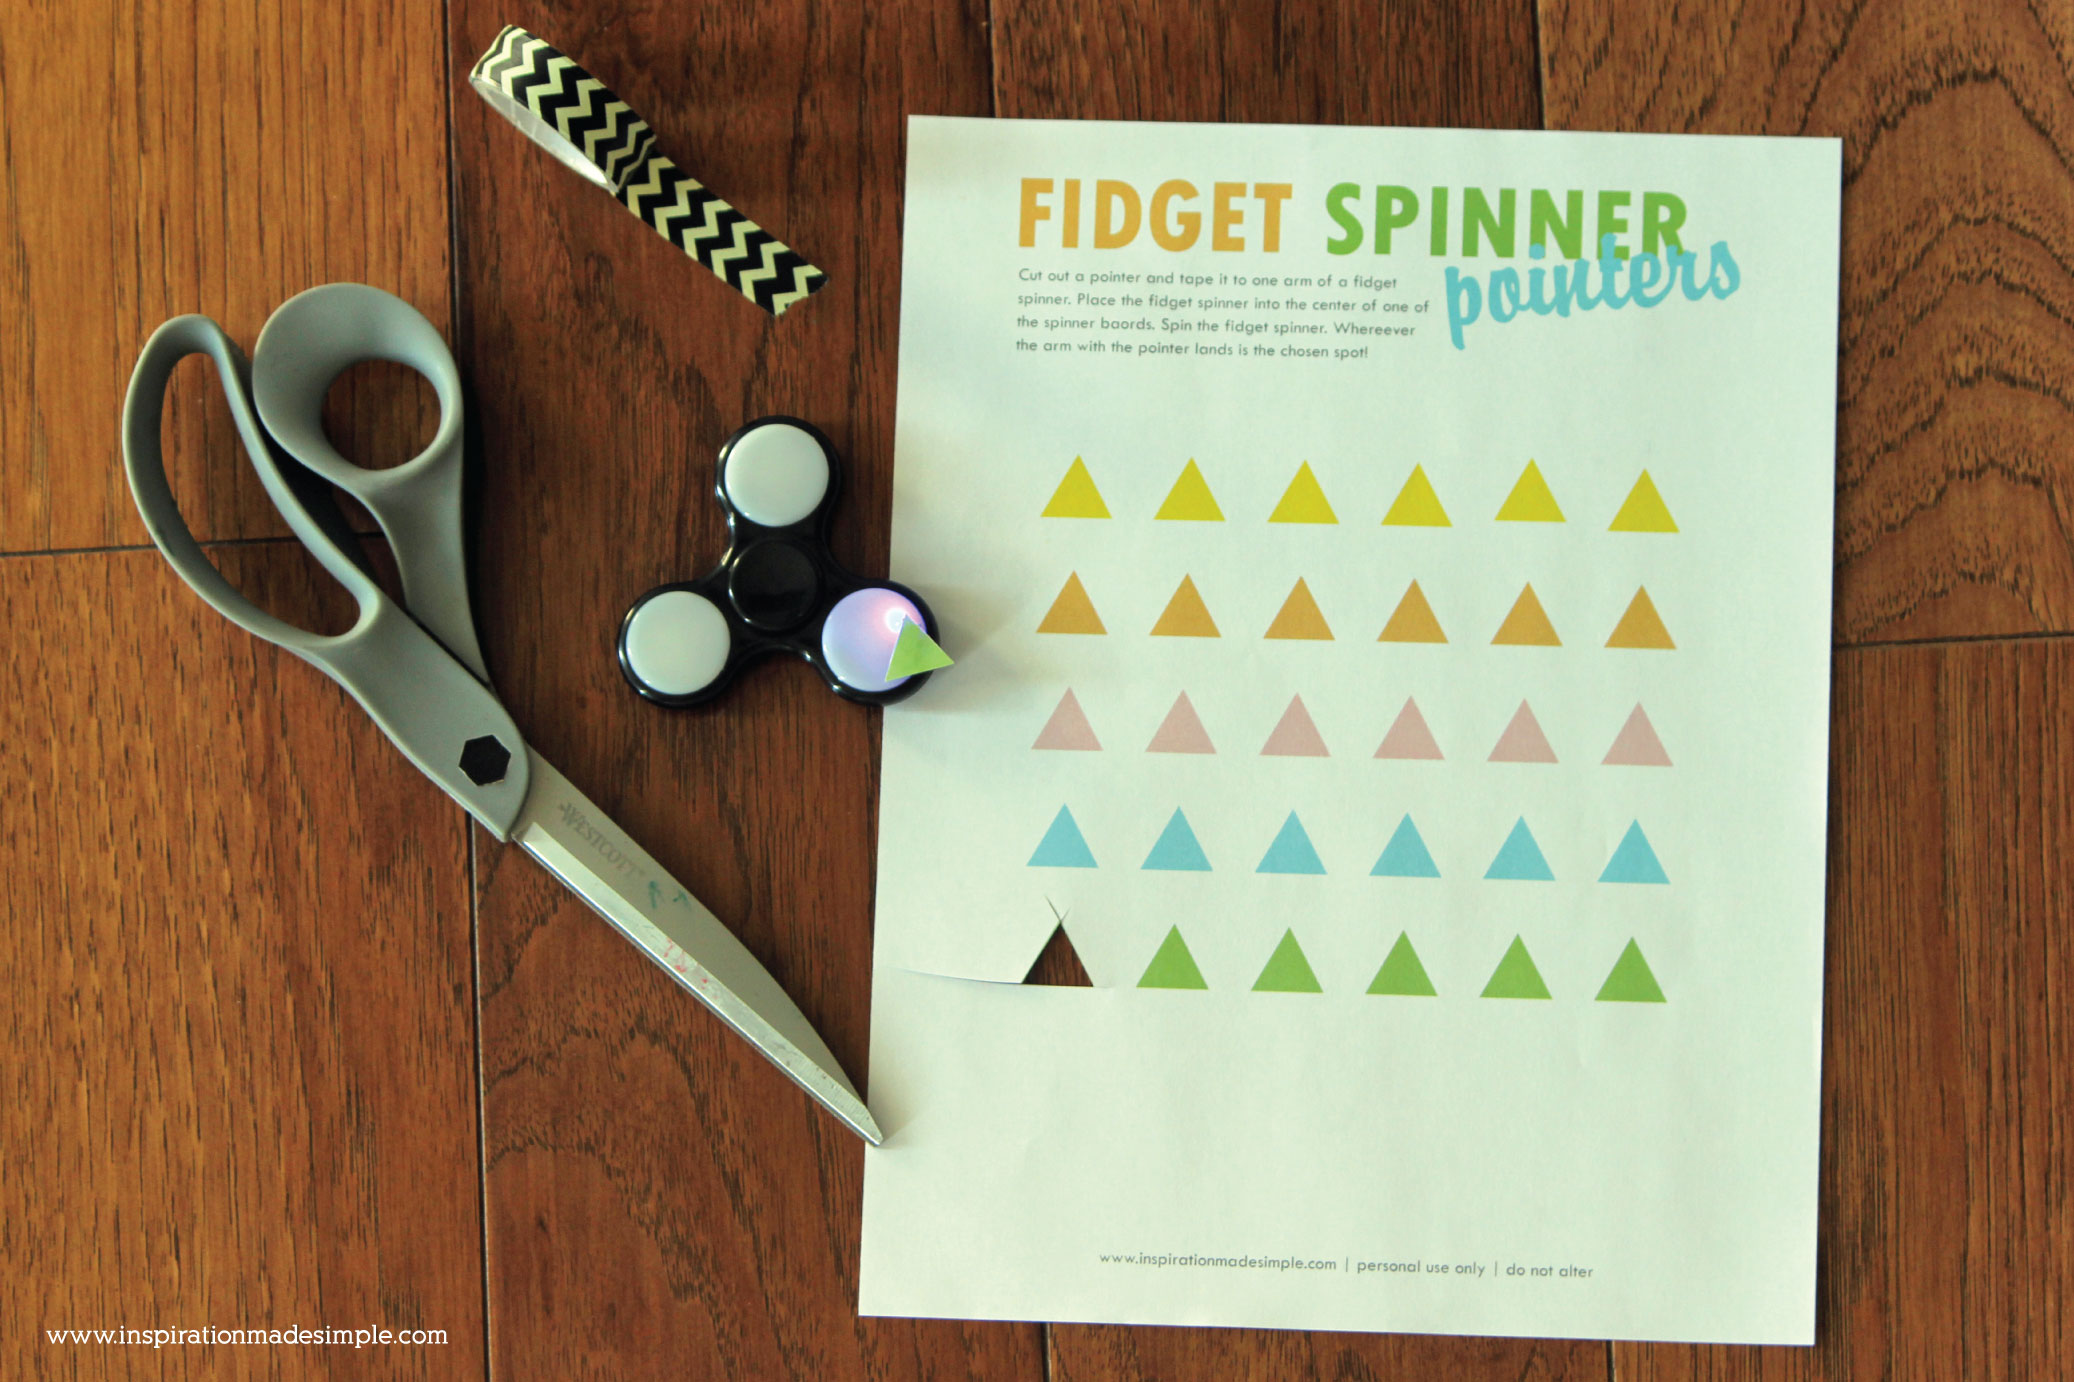 Printable Fidget Spinner Pointers for fidget spinner spinner boards!